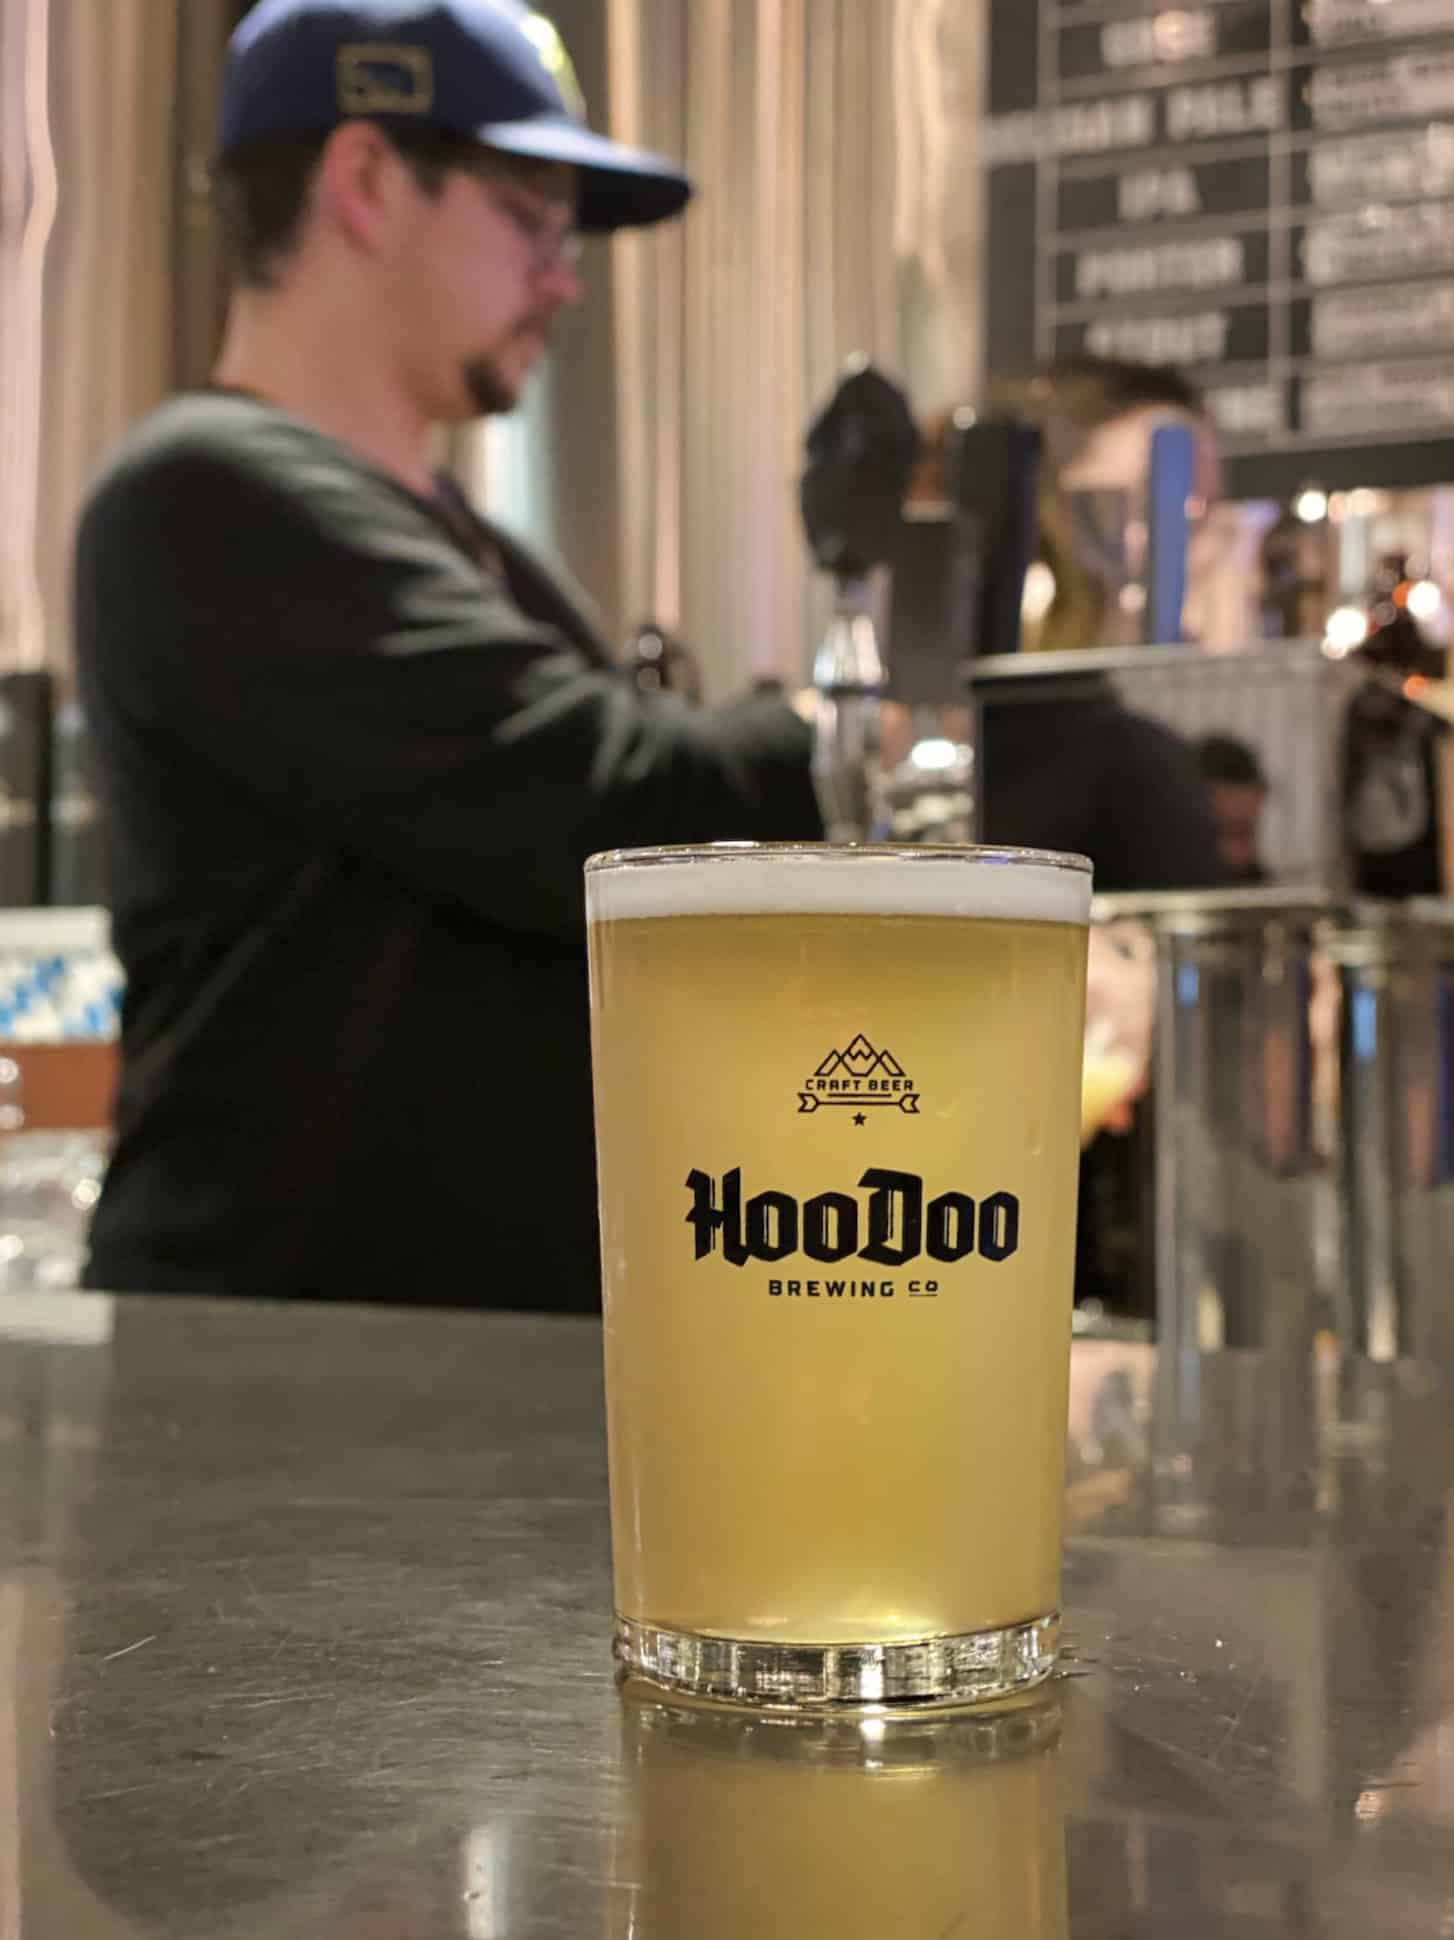 Fairbanks - Hoodoo Brewing